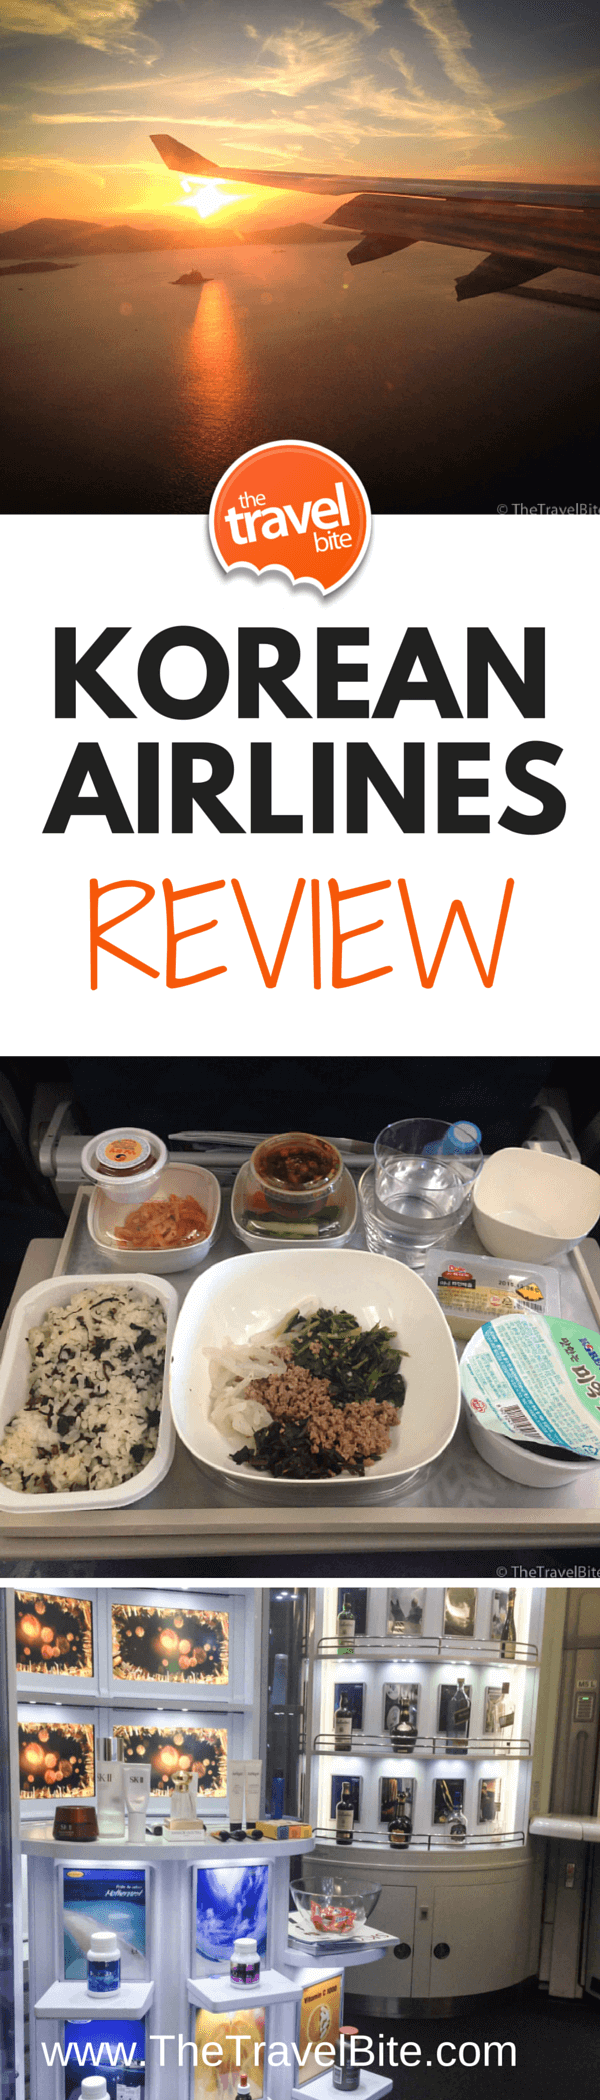 Korean Airlines Review